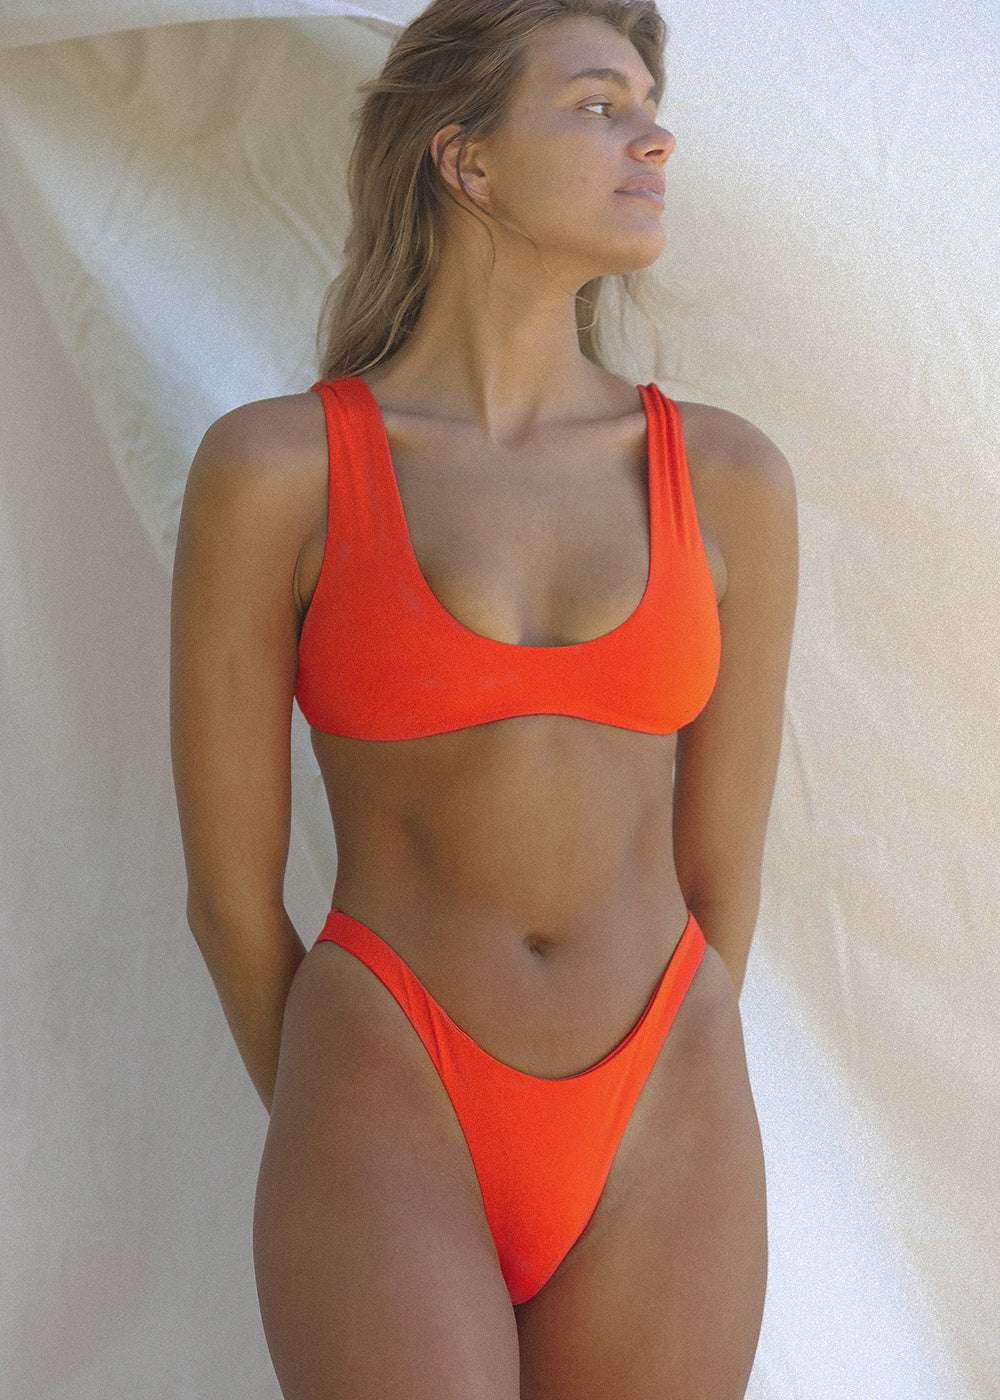 TOAST SWIM High Hip Bottom |Red Orange|